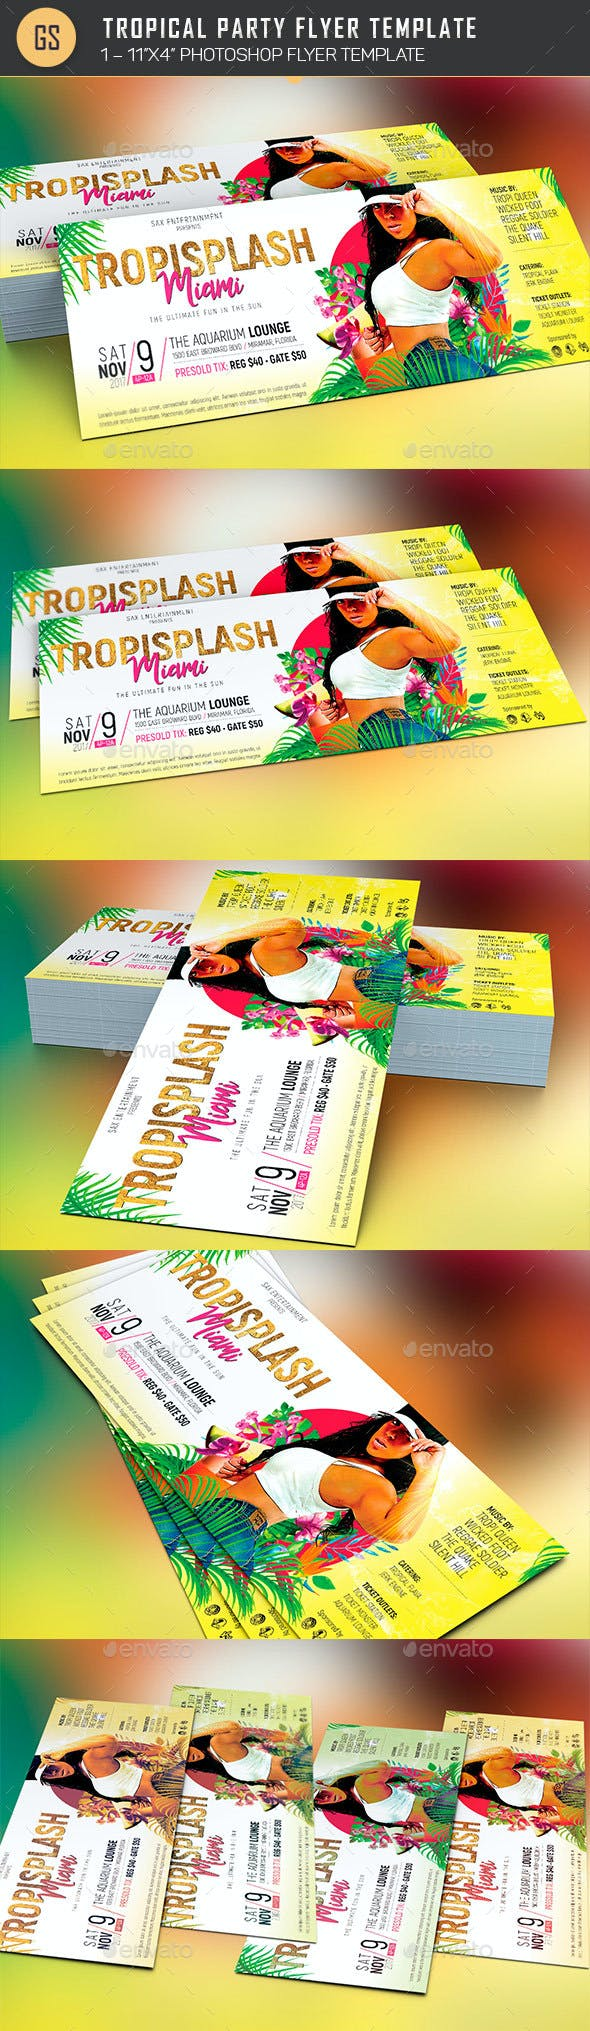 tropical party flyer template by godserv2 graphicriver